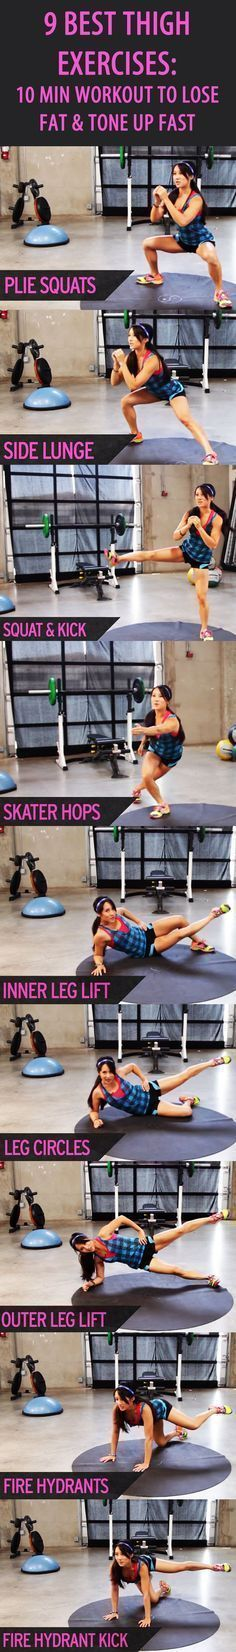 9 BEST THIGH EXERCISES: Our favorite fitness trainer Kelsey Lee shows you how to GET THINNER THIGHS IN JUST OVER TEN MINUTES! Tone your quads and hamstrings lose weight quick diet | Posted By: NewHowToLoseBellyFat.com